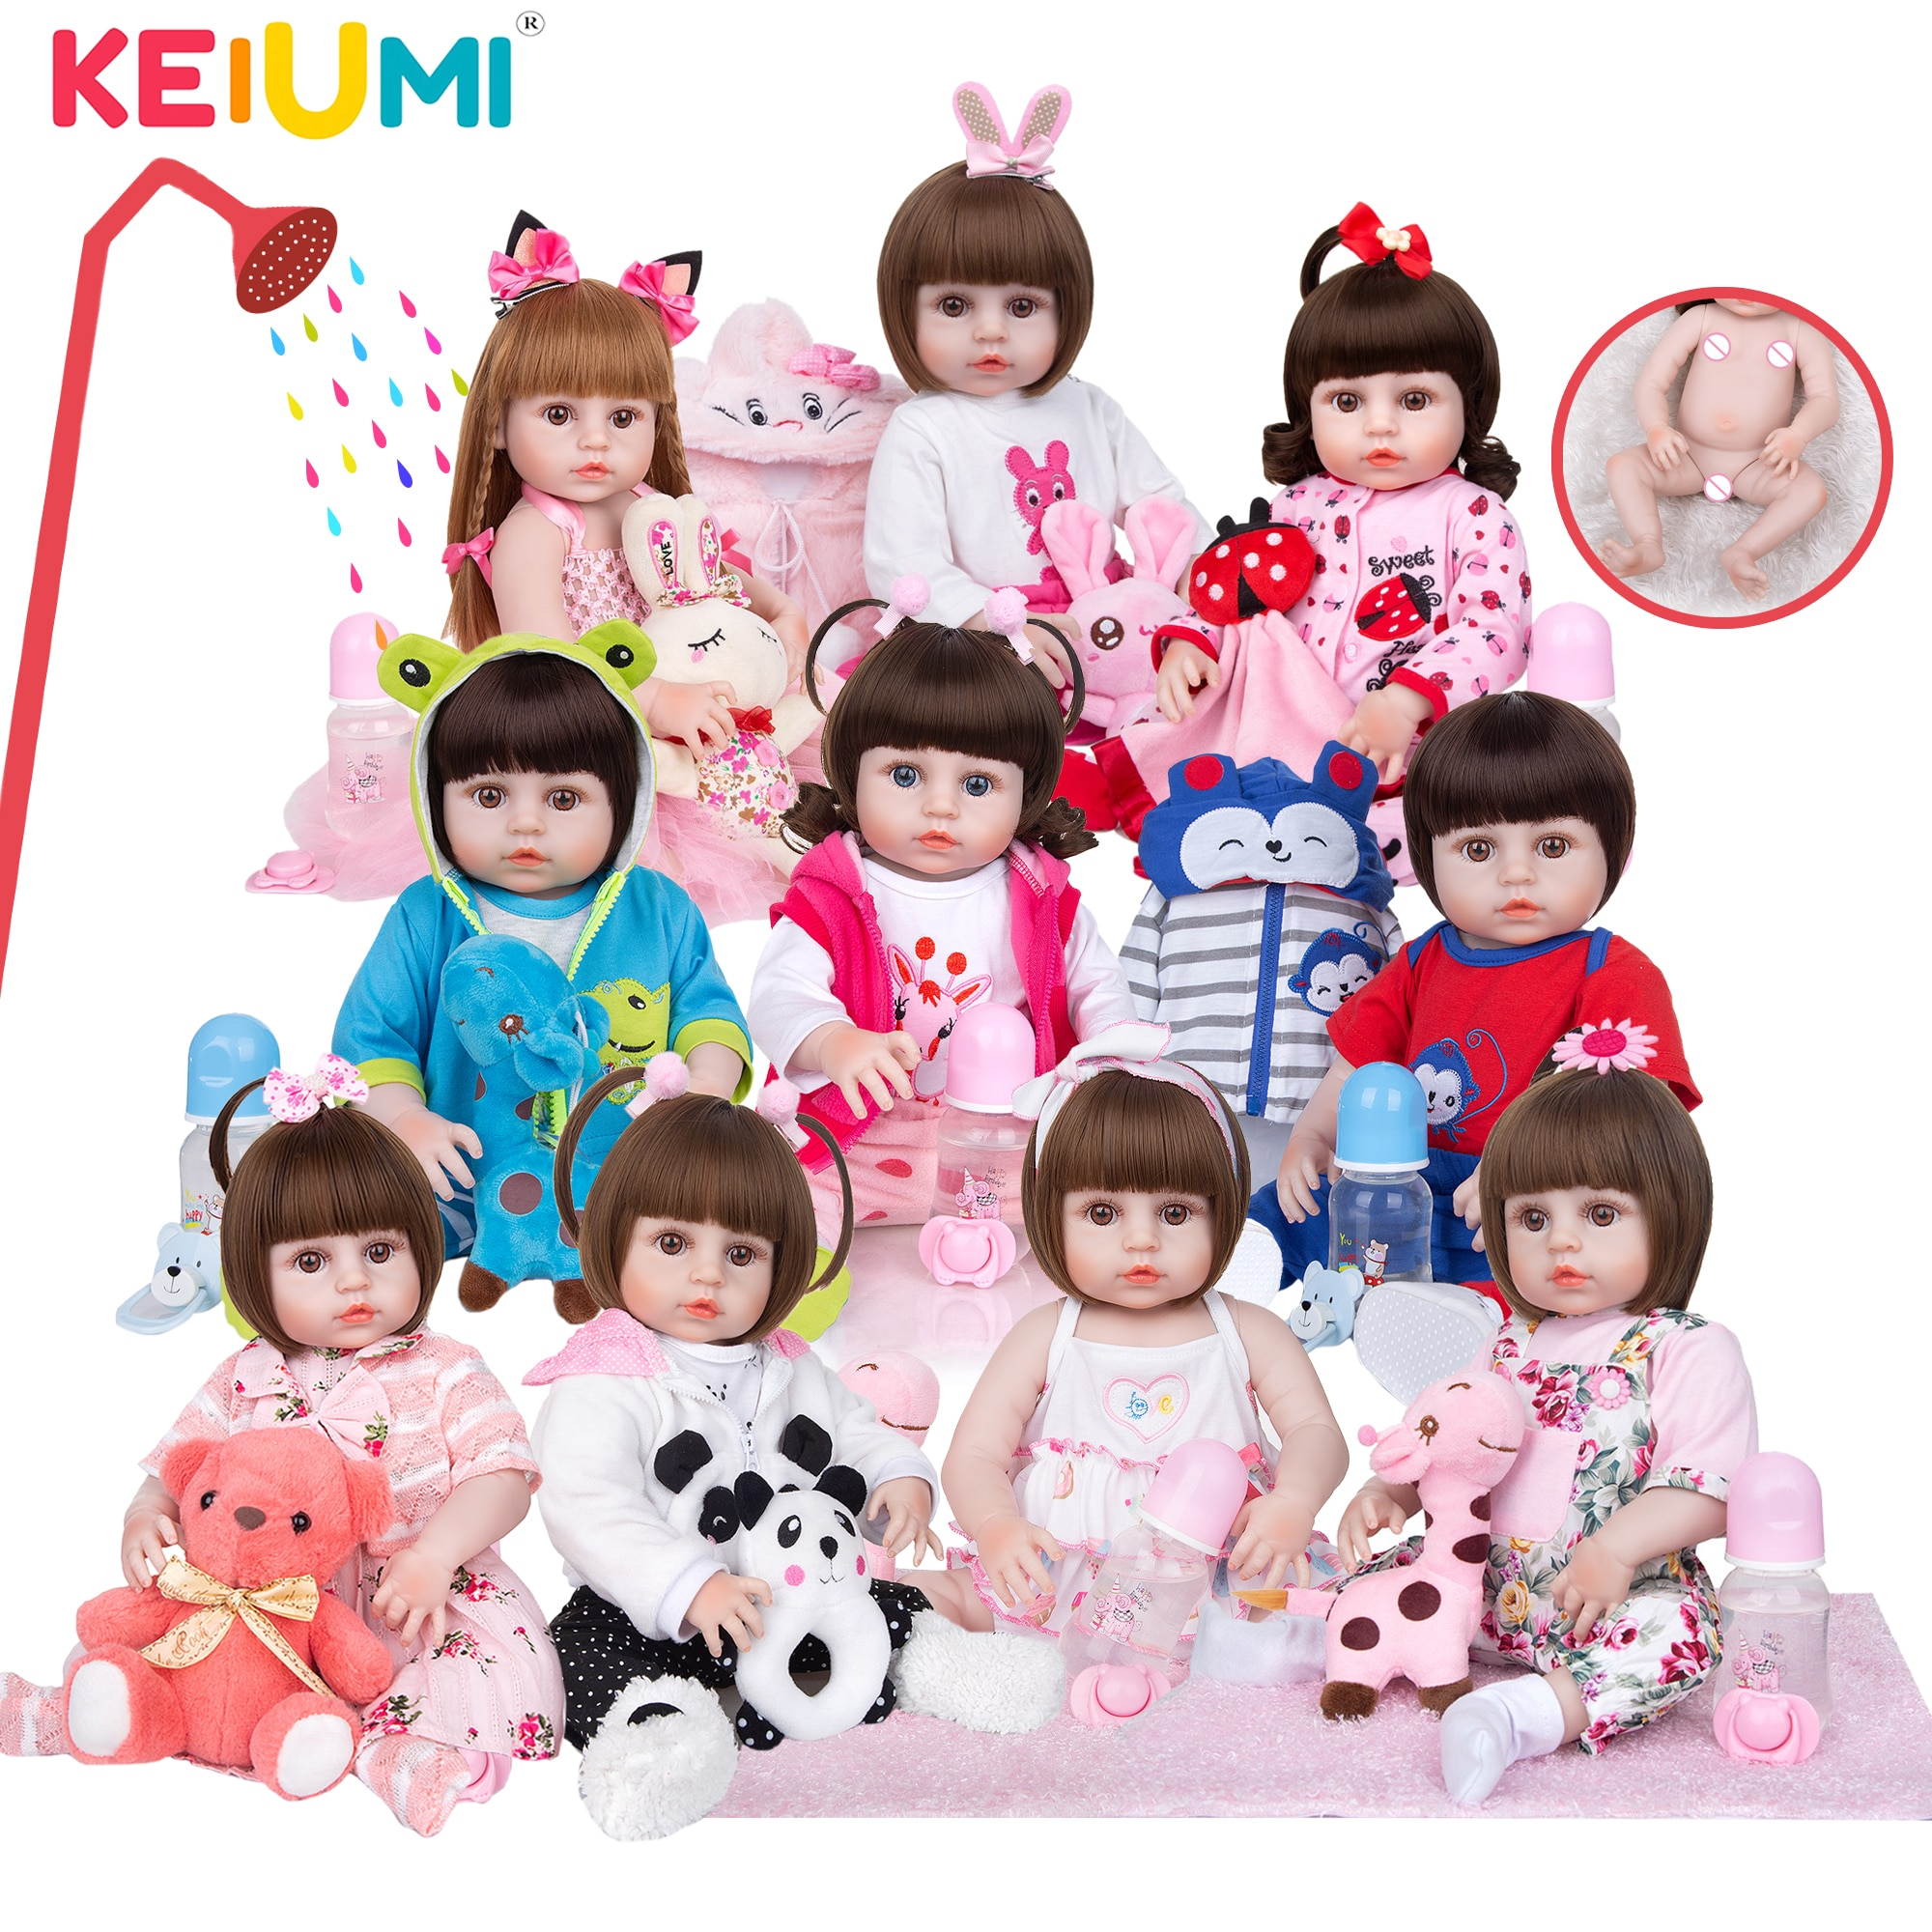 Wholesale KEIUMI Full Silicone Vinyl Reborn Baby Dolls Fashion Waterproof Doll Baby Toy For Kids Birthday Gifts Playmate